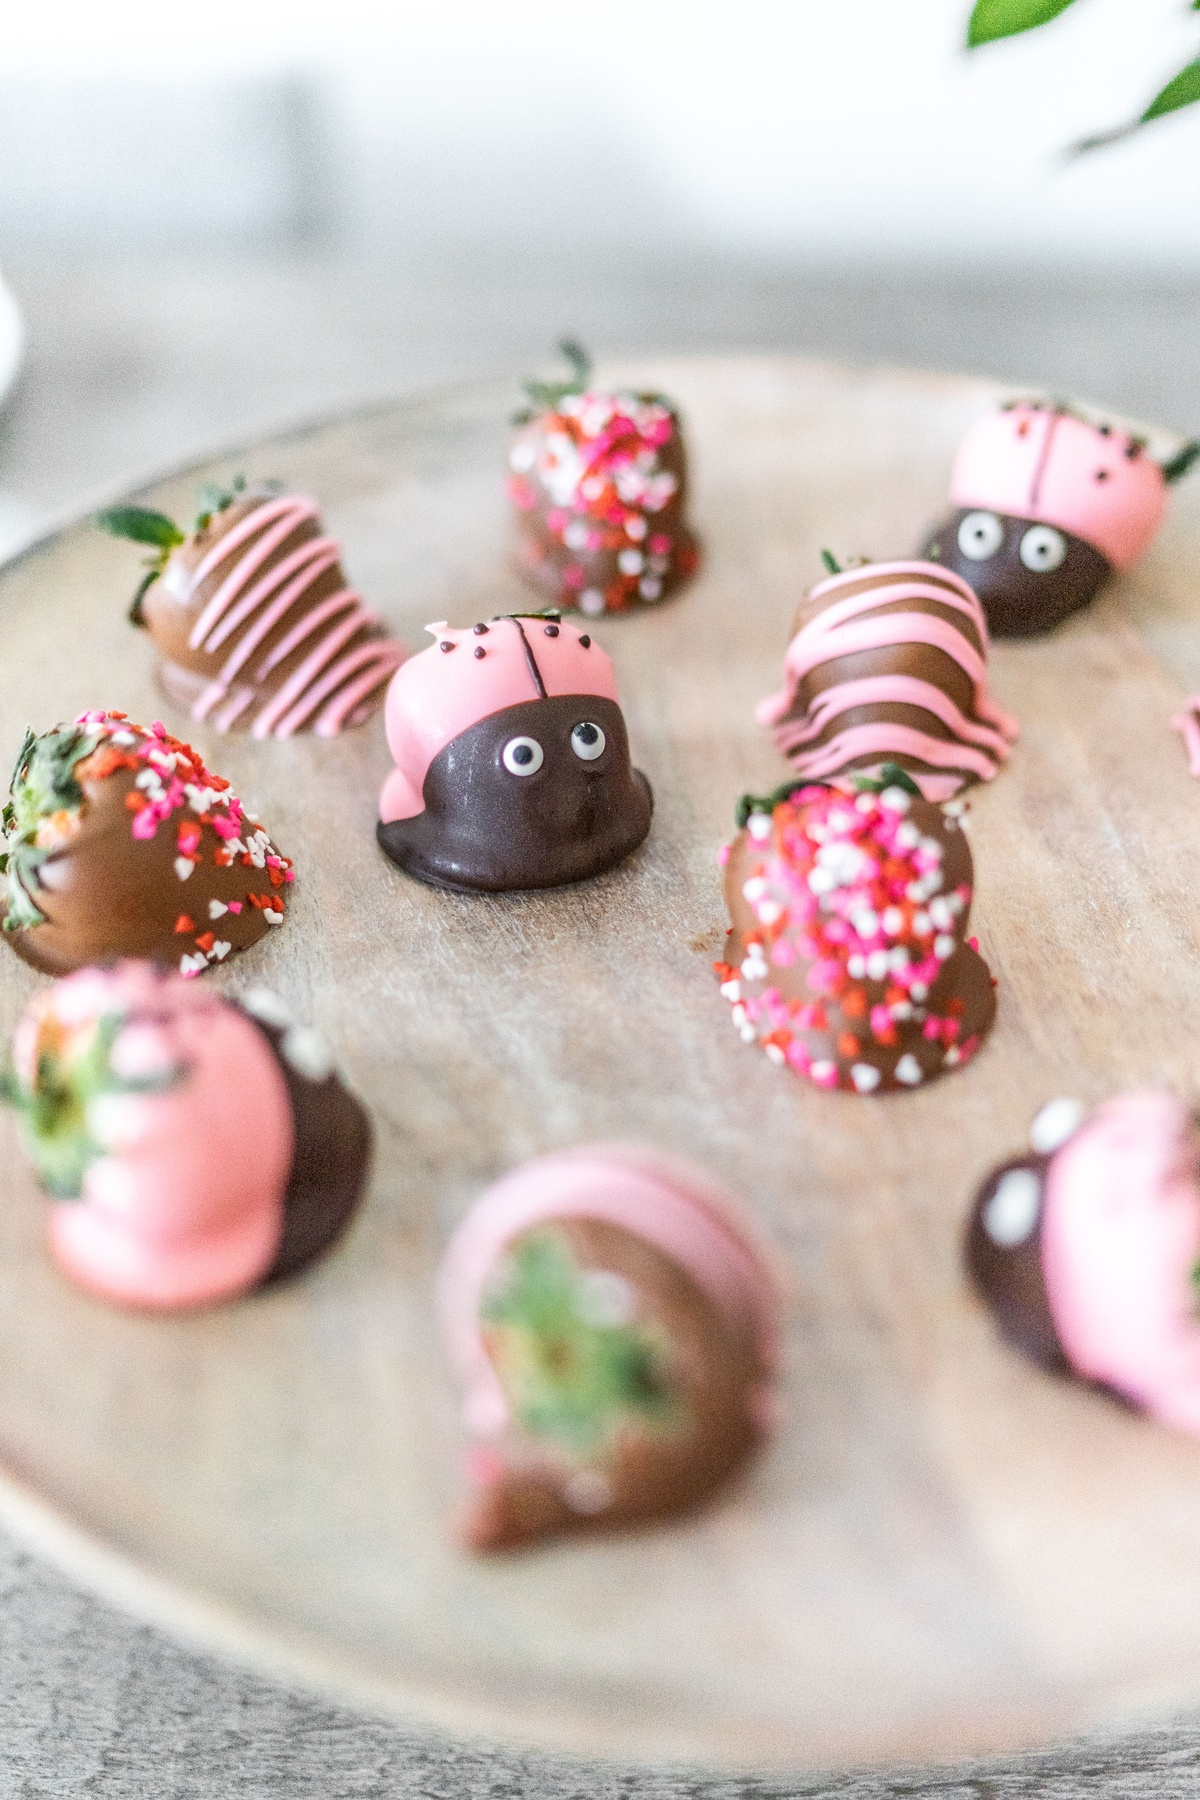 Chocolate Covered Strawberries with Pink and Red Sprinkles